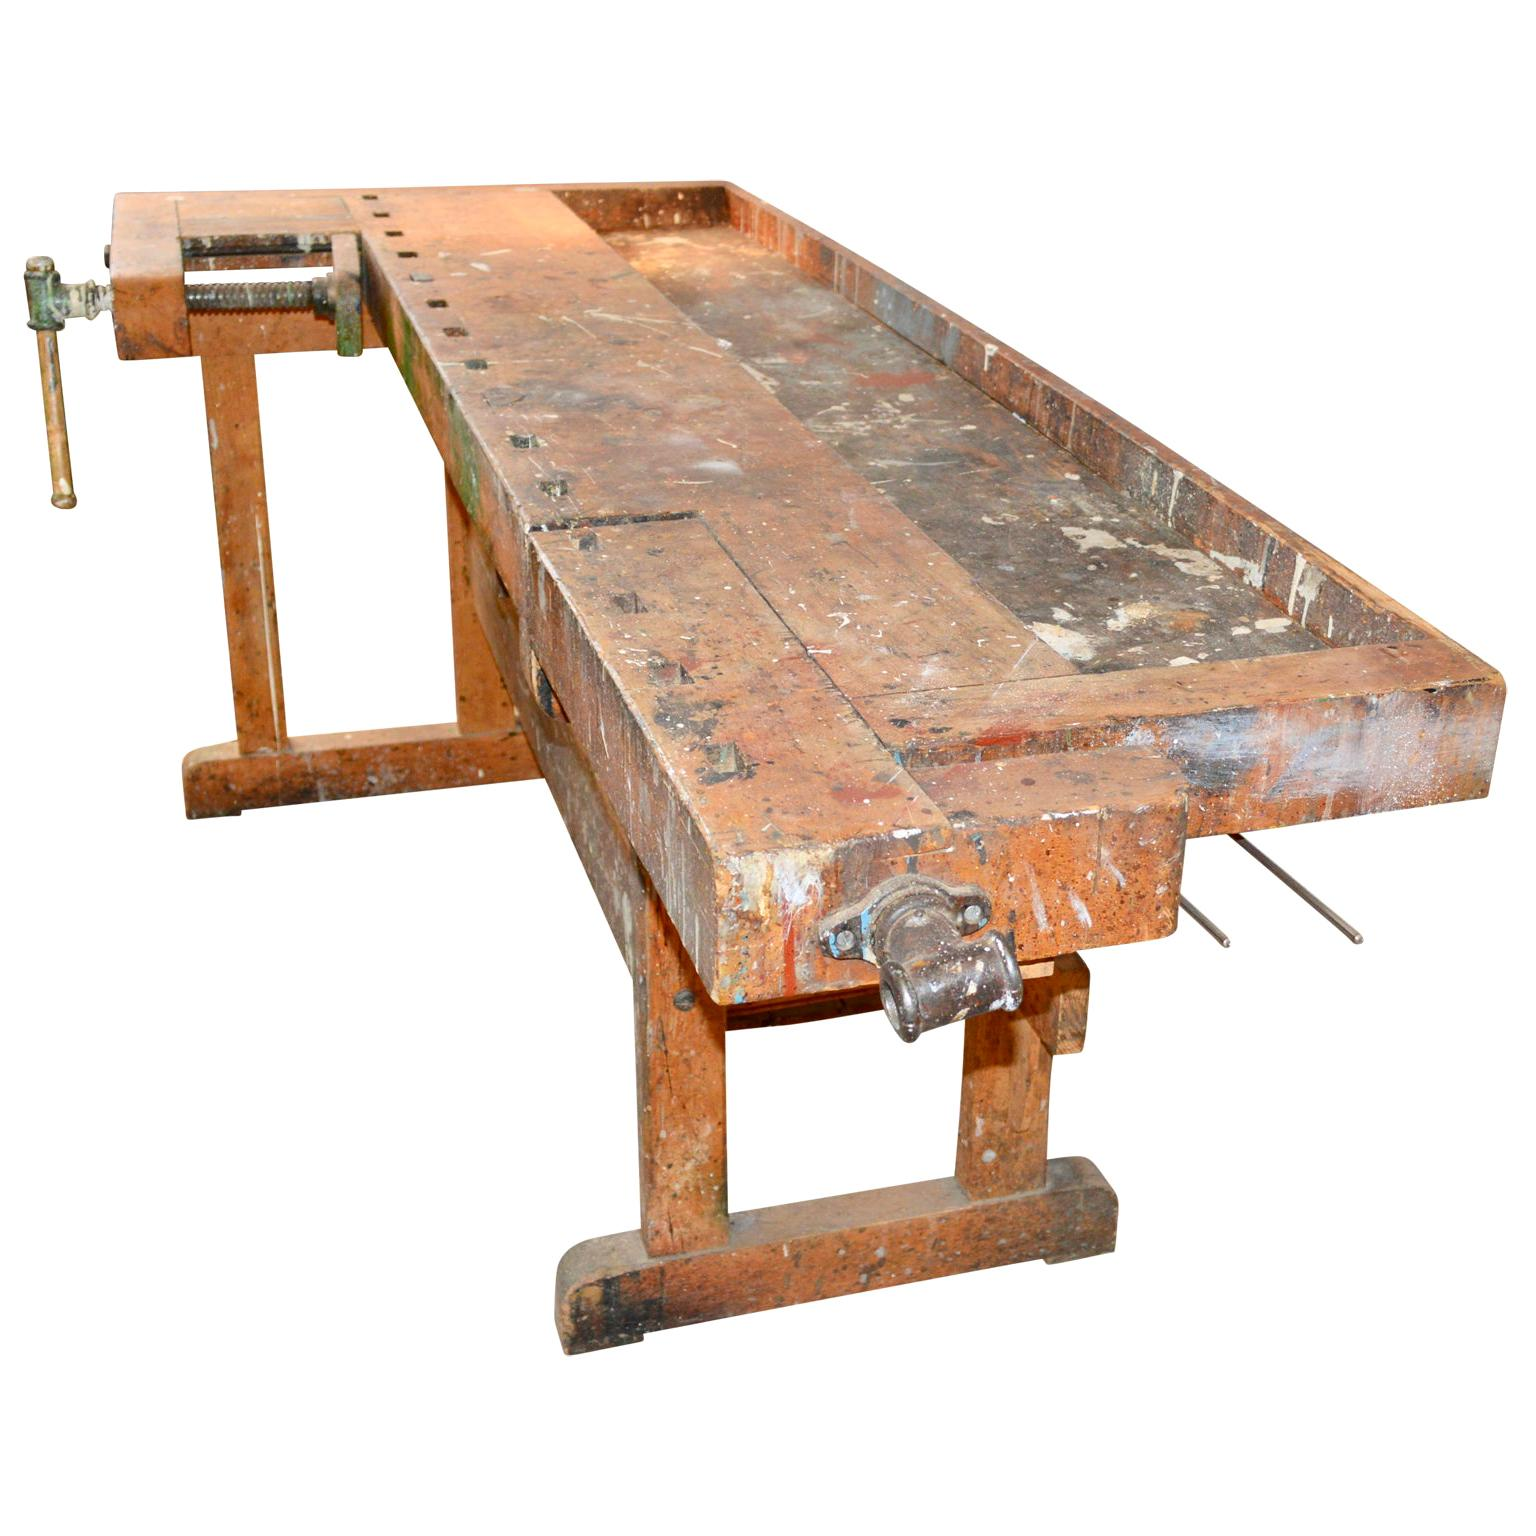 Surprising Antique Workbenches 106 For Sale On 1Stdibs Caraccident5 Cool Chair Designs And Ideas Caraccident5Info